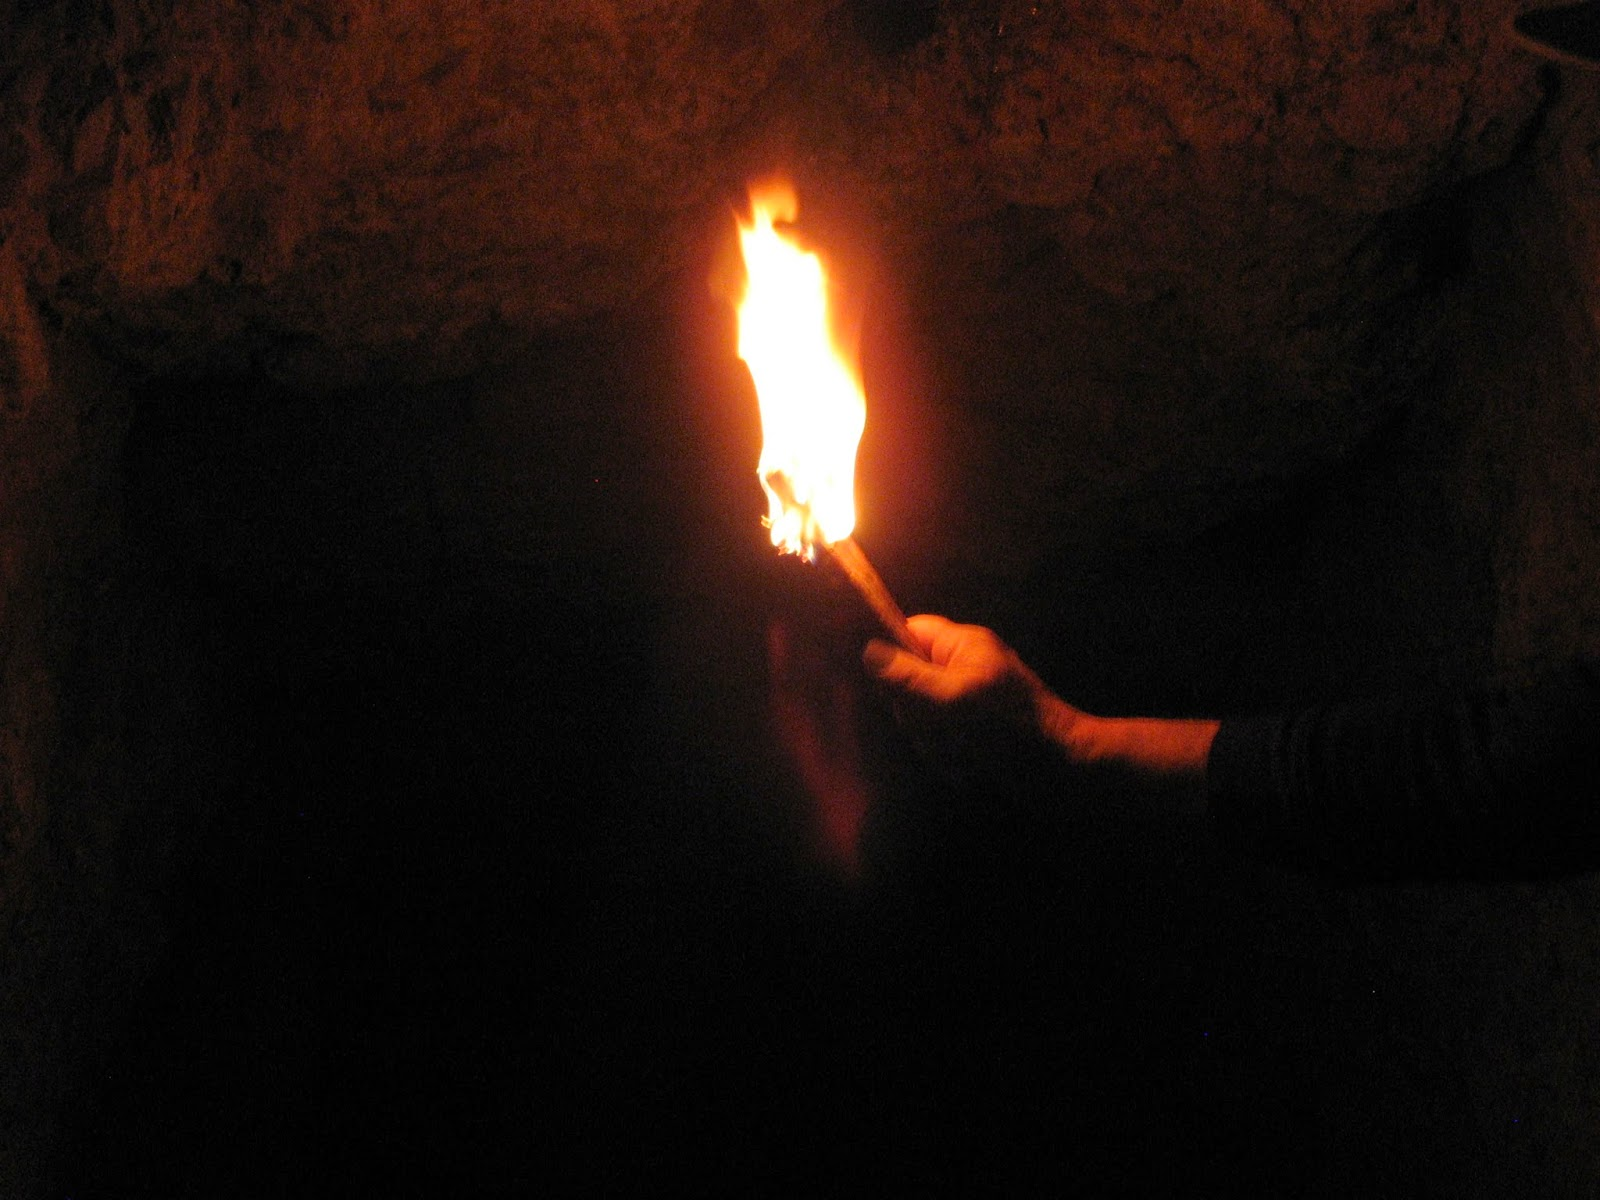 Rocky mountain bushcraft shot show 2014 first impression review -  A Douglas Fir Pitchwood Torch Burns Furiously Illuminating The Walls Of An Old Mining Cave High In The Rocky Mountains 2011 Rocky Mountain Bushcraft